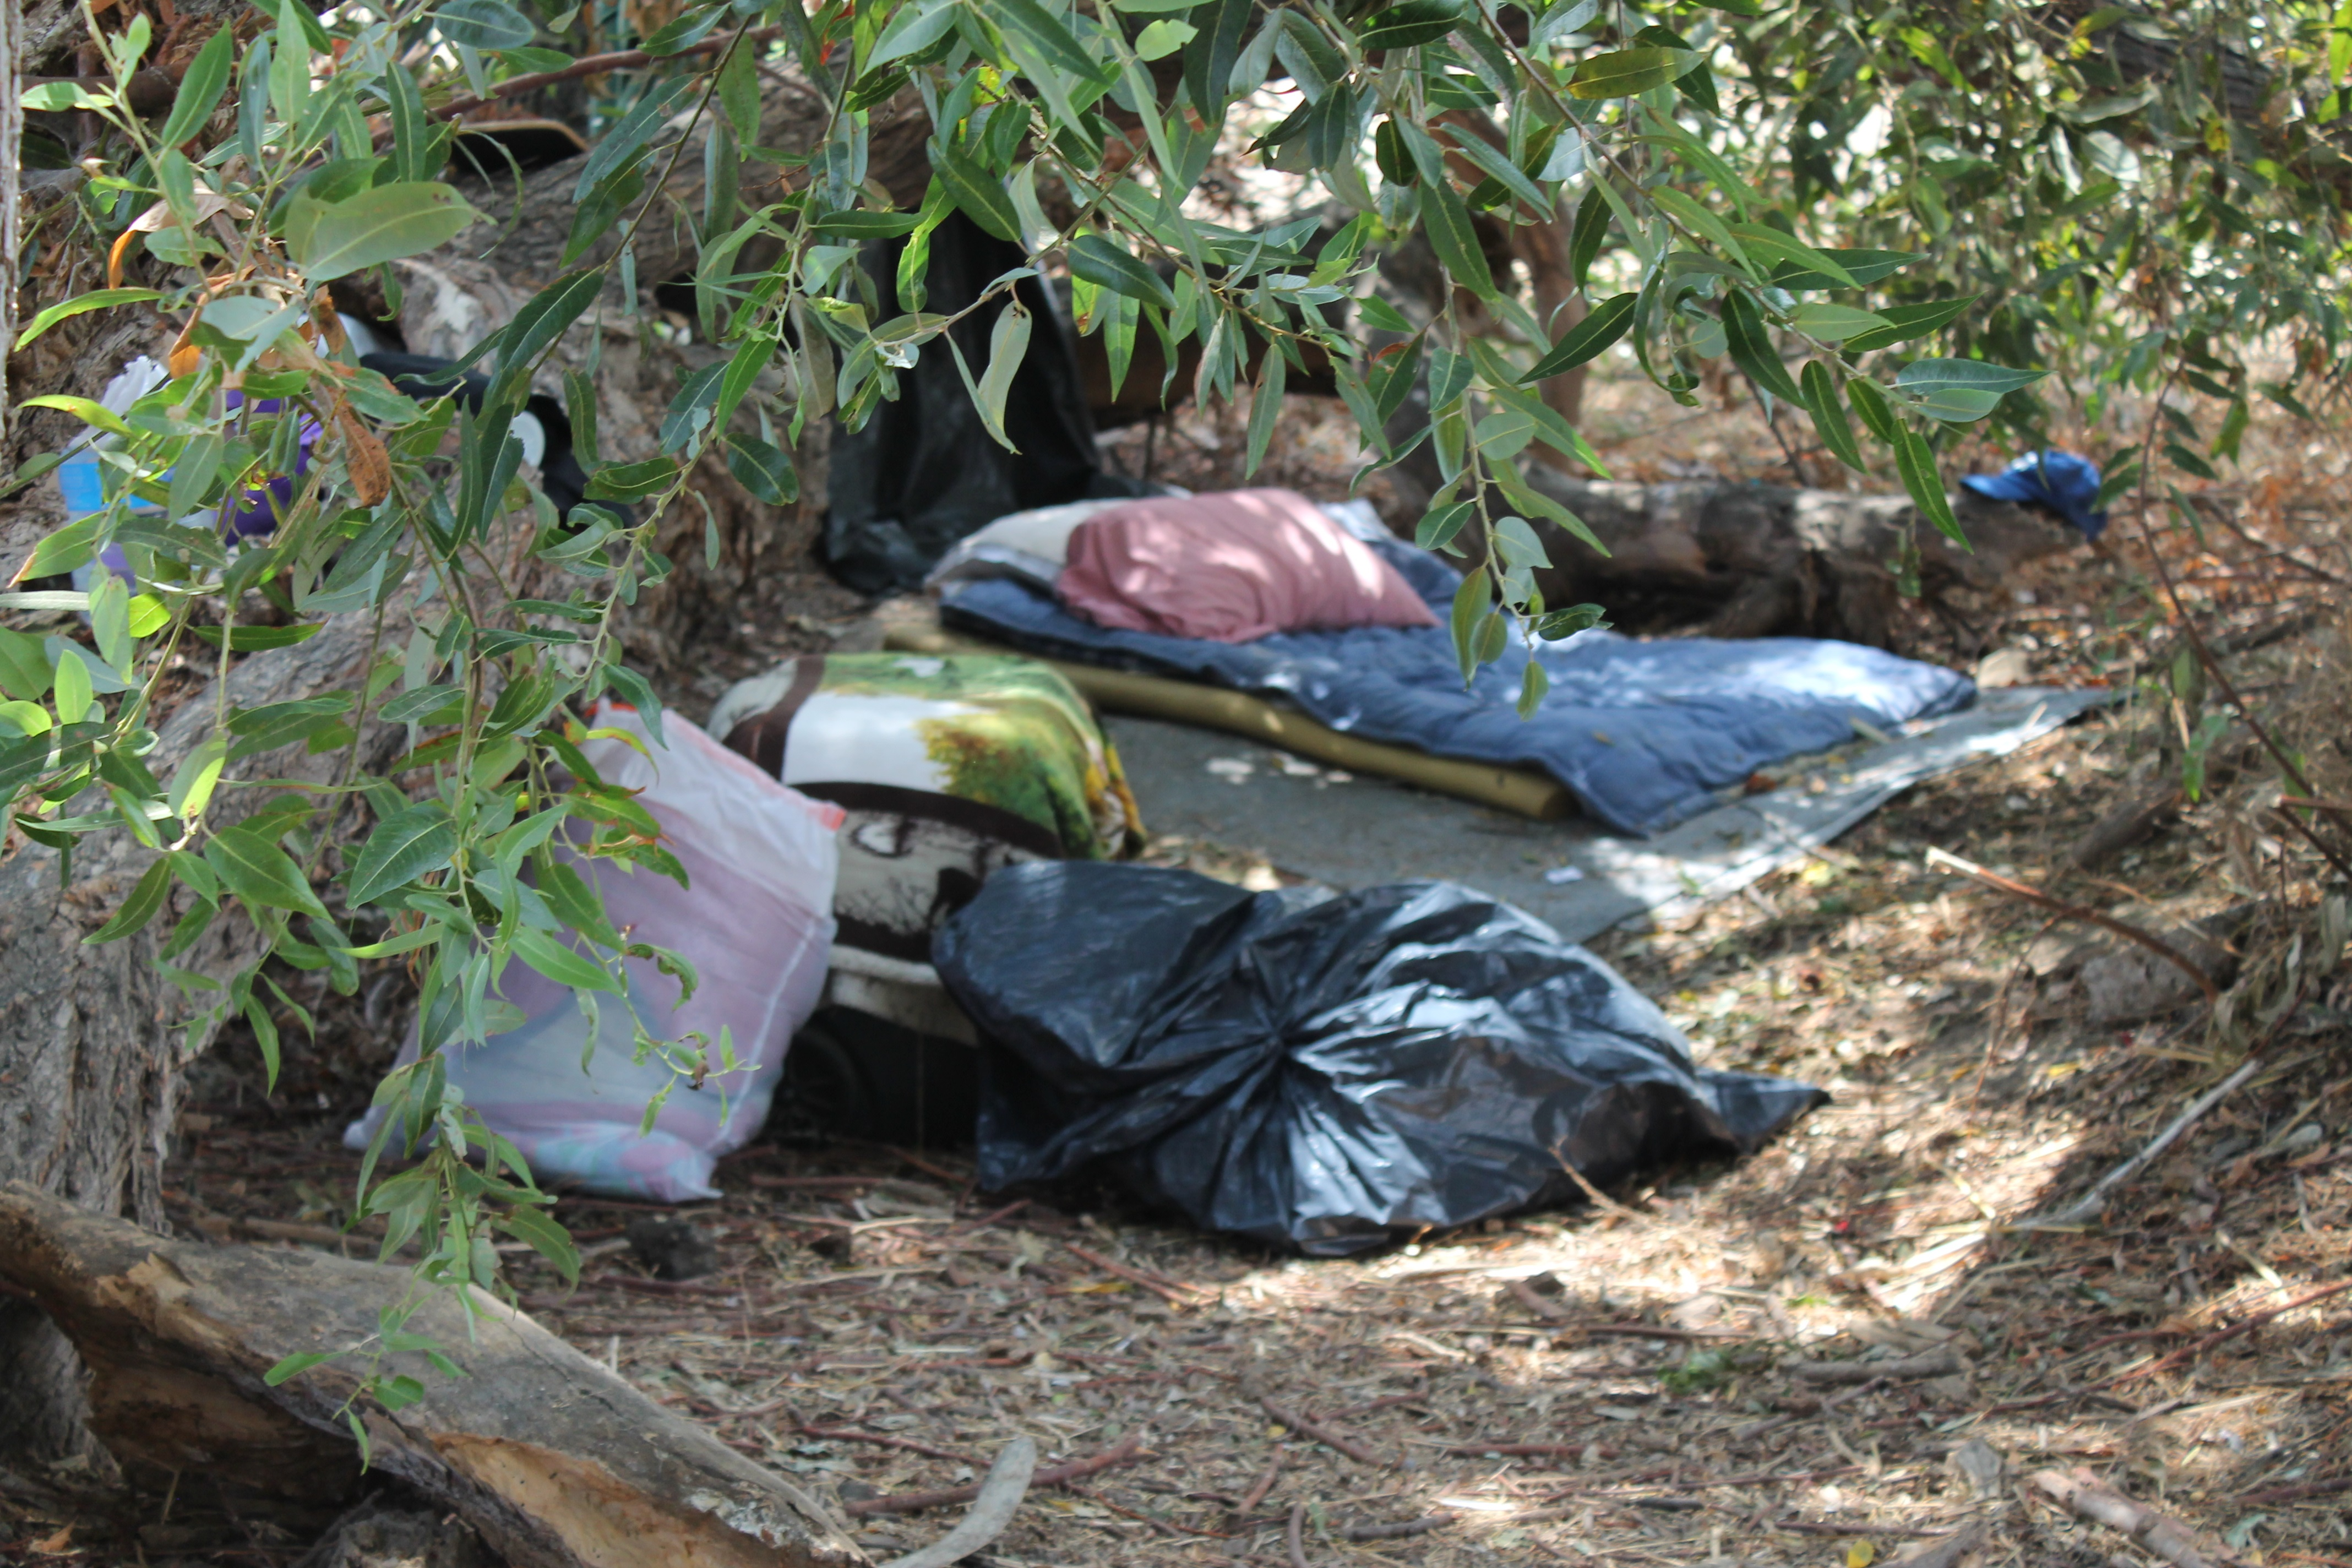 A person has set up camp in a lot adjacent to the Capistrano Valley Mobile Home Estates. Photo: Alex Groves